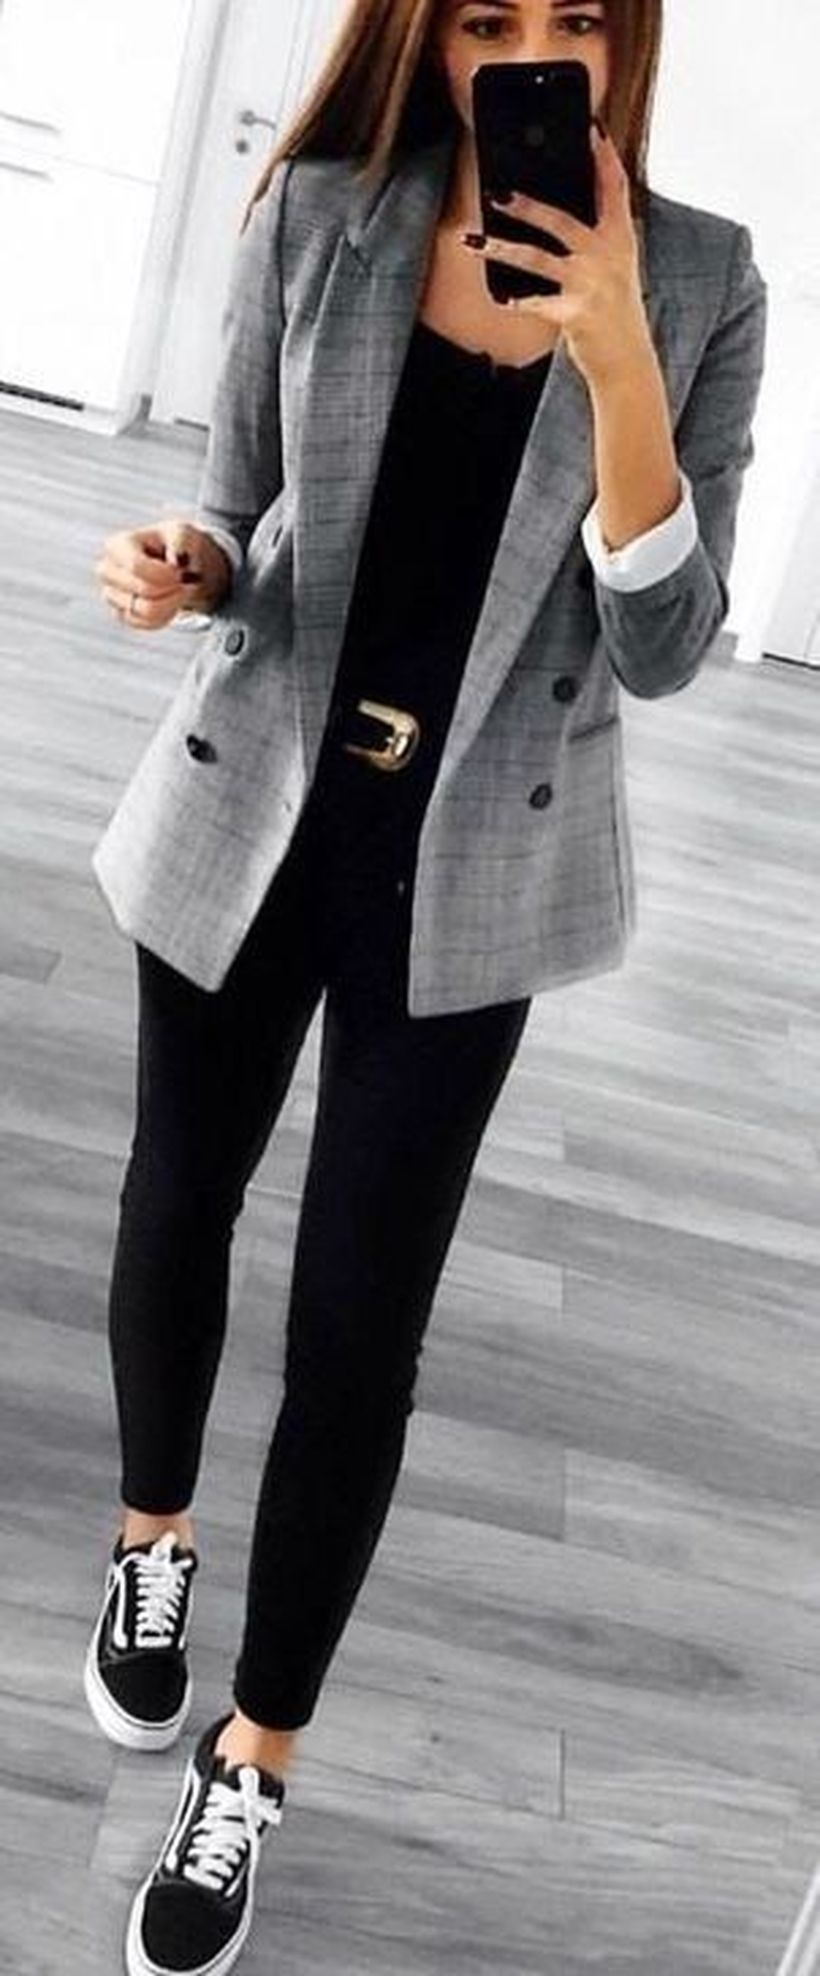 54 Casual Work Outfits For Women With Sneakers My Work Outfit Blog In 2020 Casual Work Outfits Spring Work Outfits Best Casual Outfits